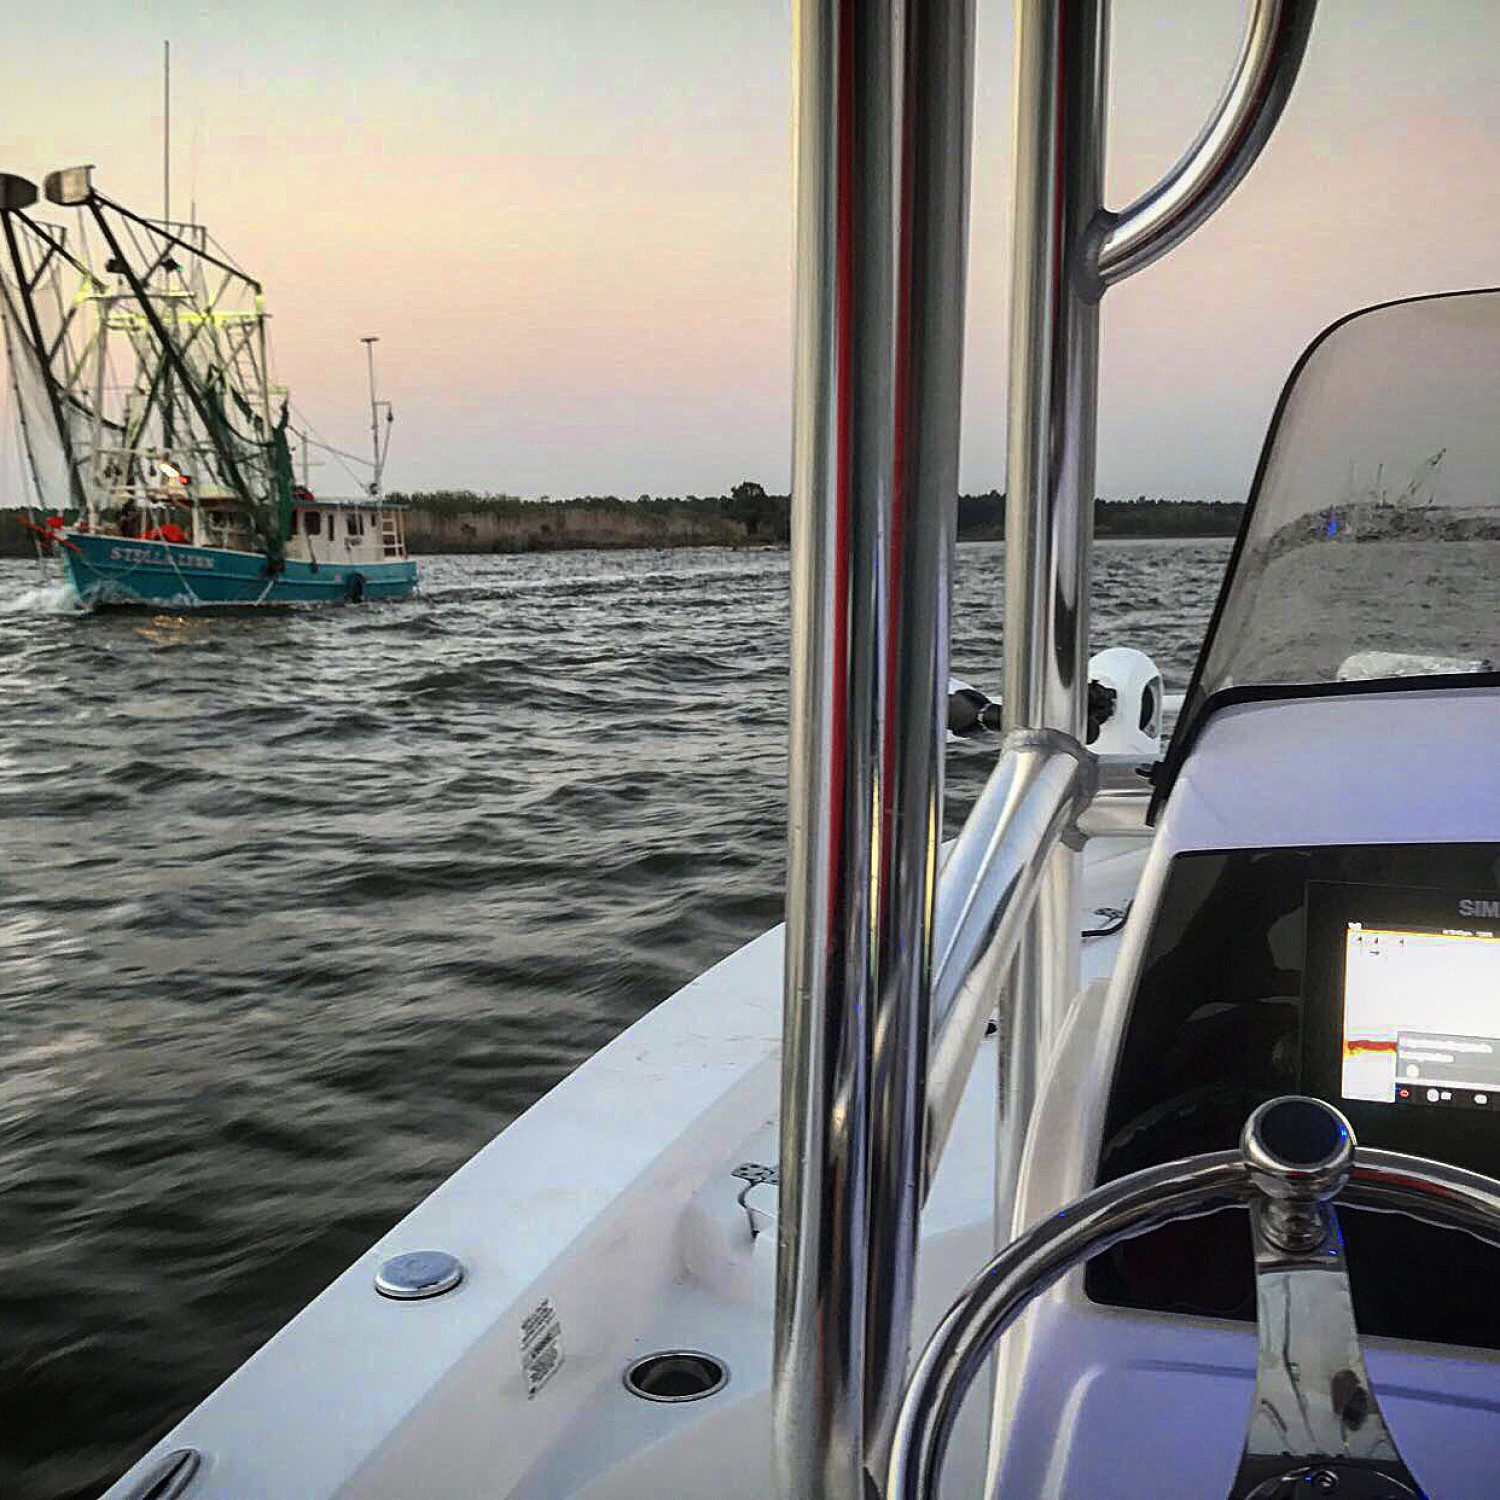 Title: Afternoon Delight - On board their Sportsman Masters 227 Bay Boat - Location: Bayou La Batre, Alabama. Participating in the Photo Contest #SportsmanJanuary2018